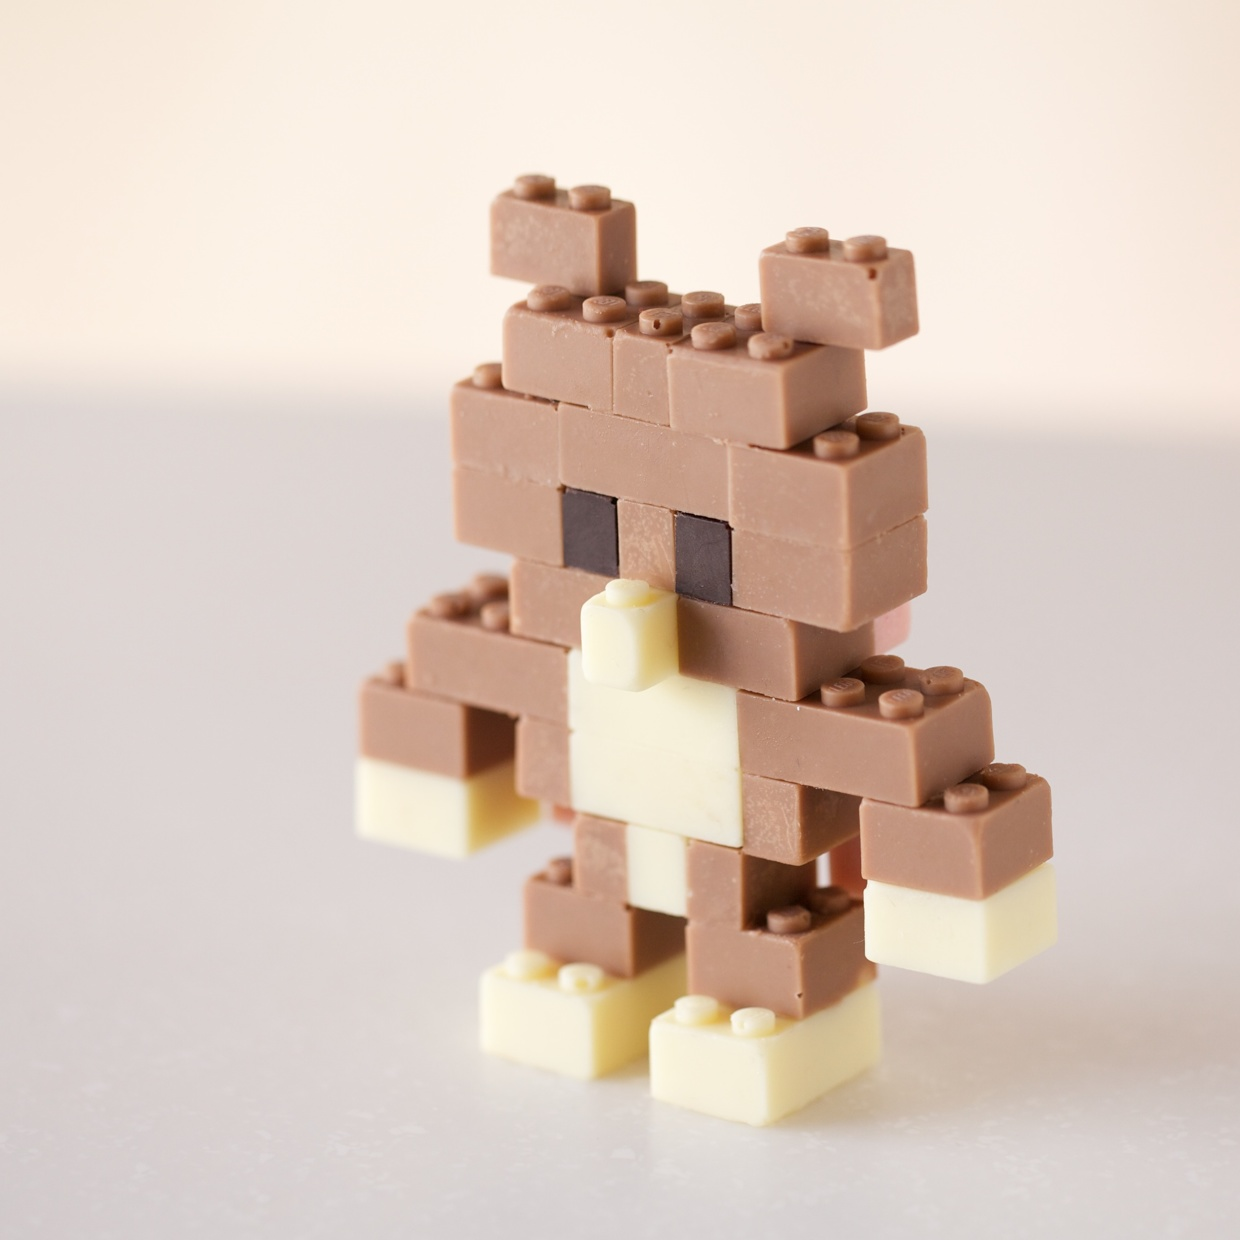 Functional LEGO Models Made from Chocolate